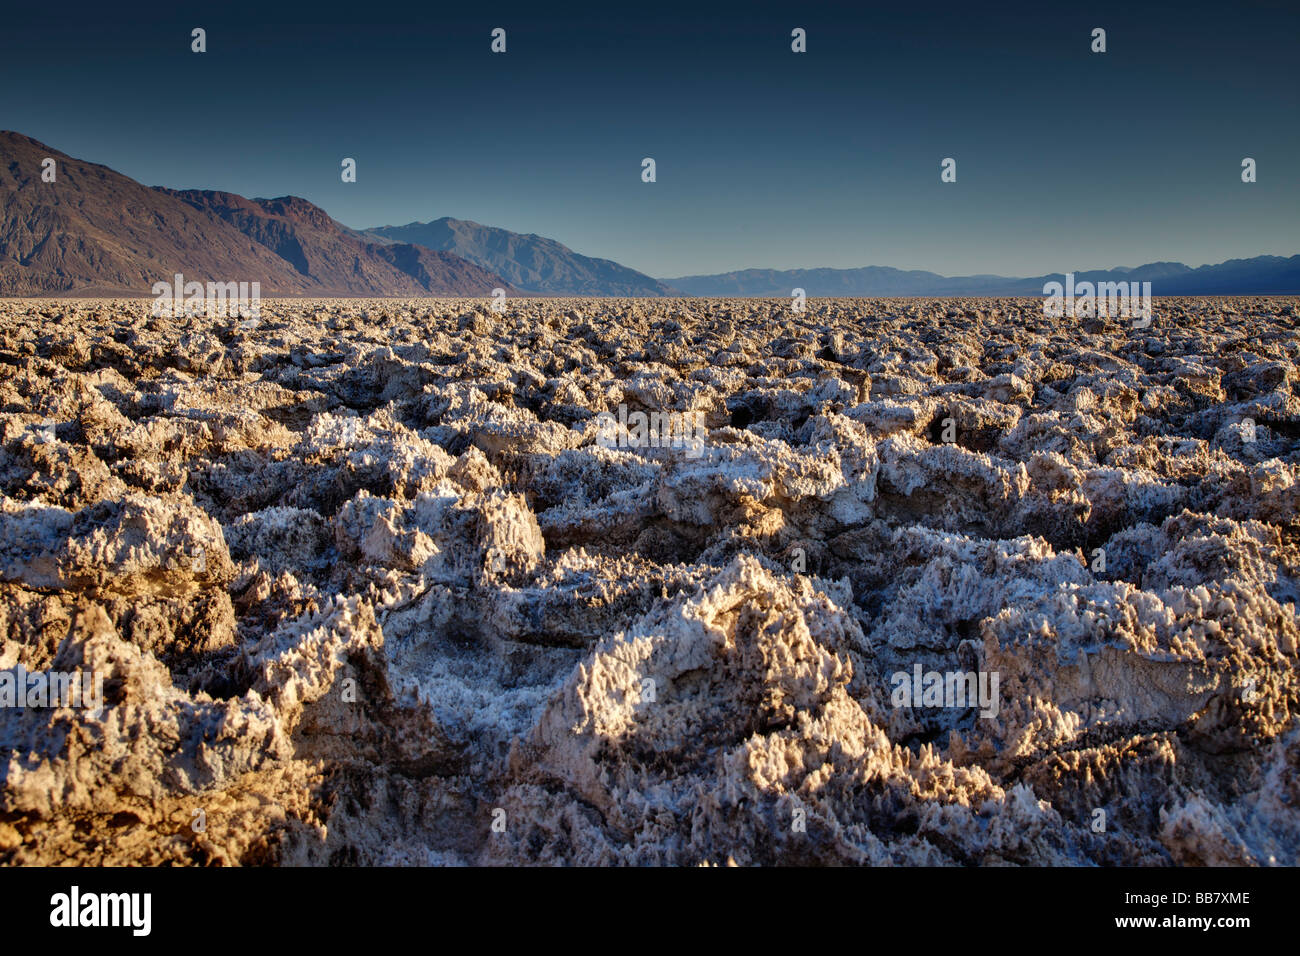 View across salt formations at Devils Golf Course in Death Valley National Park California USA - Stock Image